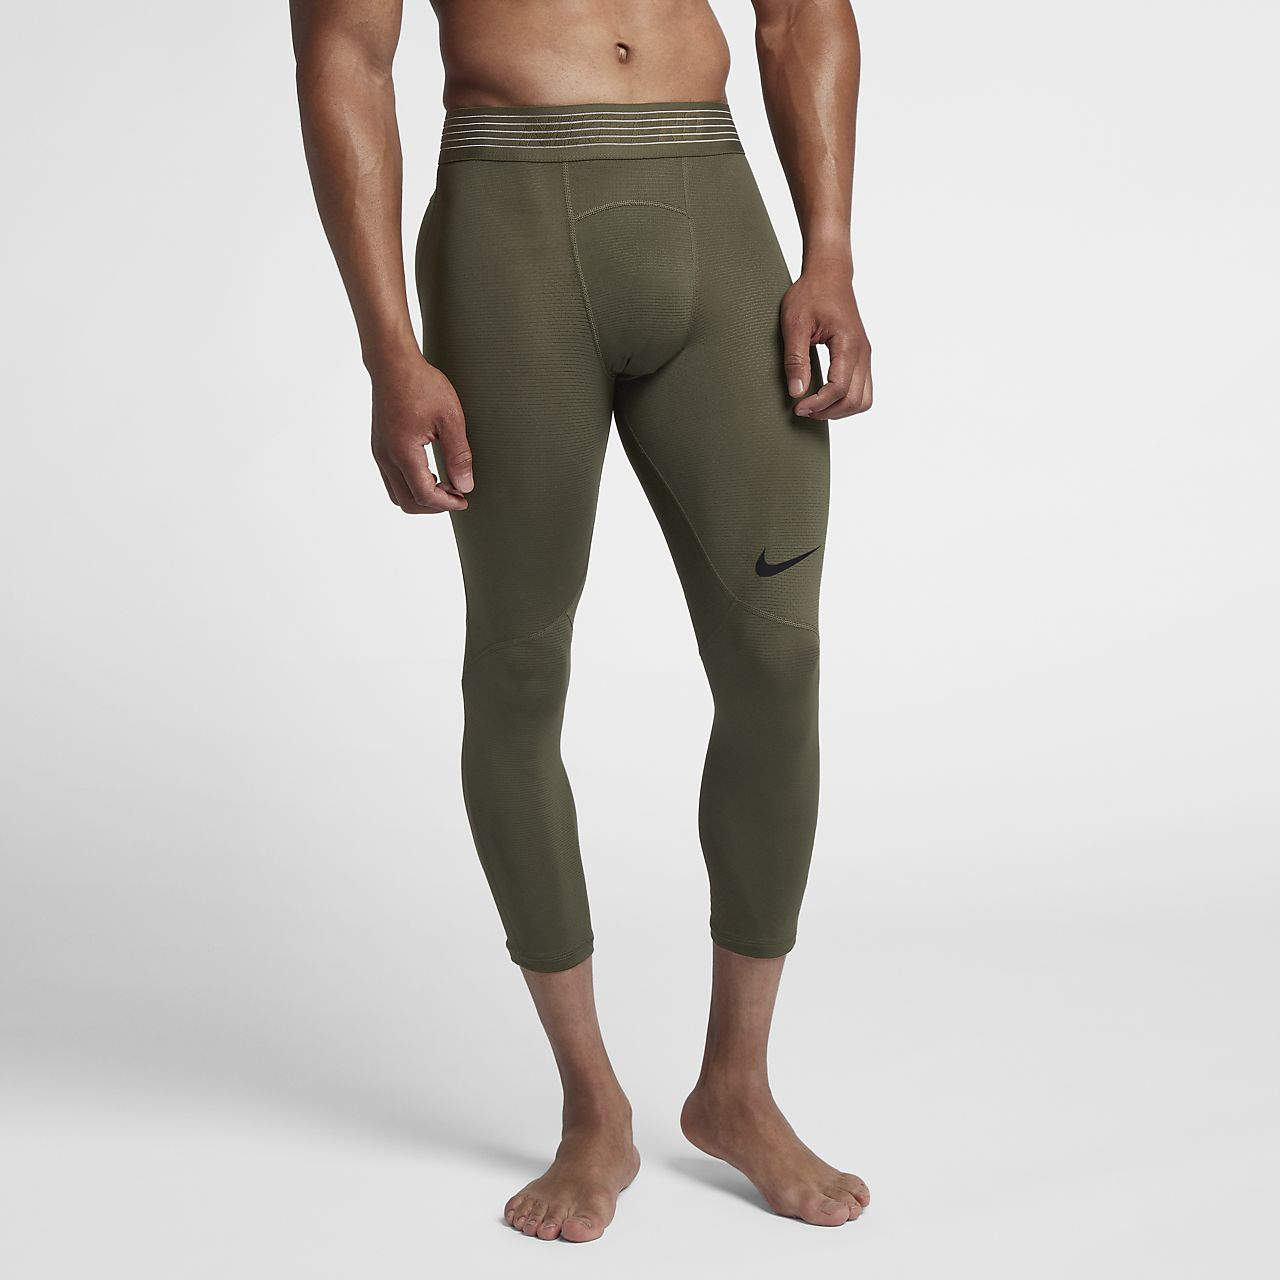 a65cbb90cb45 Nike Pro HyperCool Men s 3 4 Training Tights. Nike.com AU